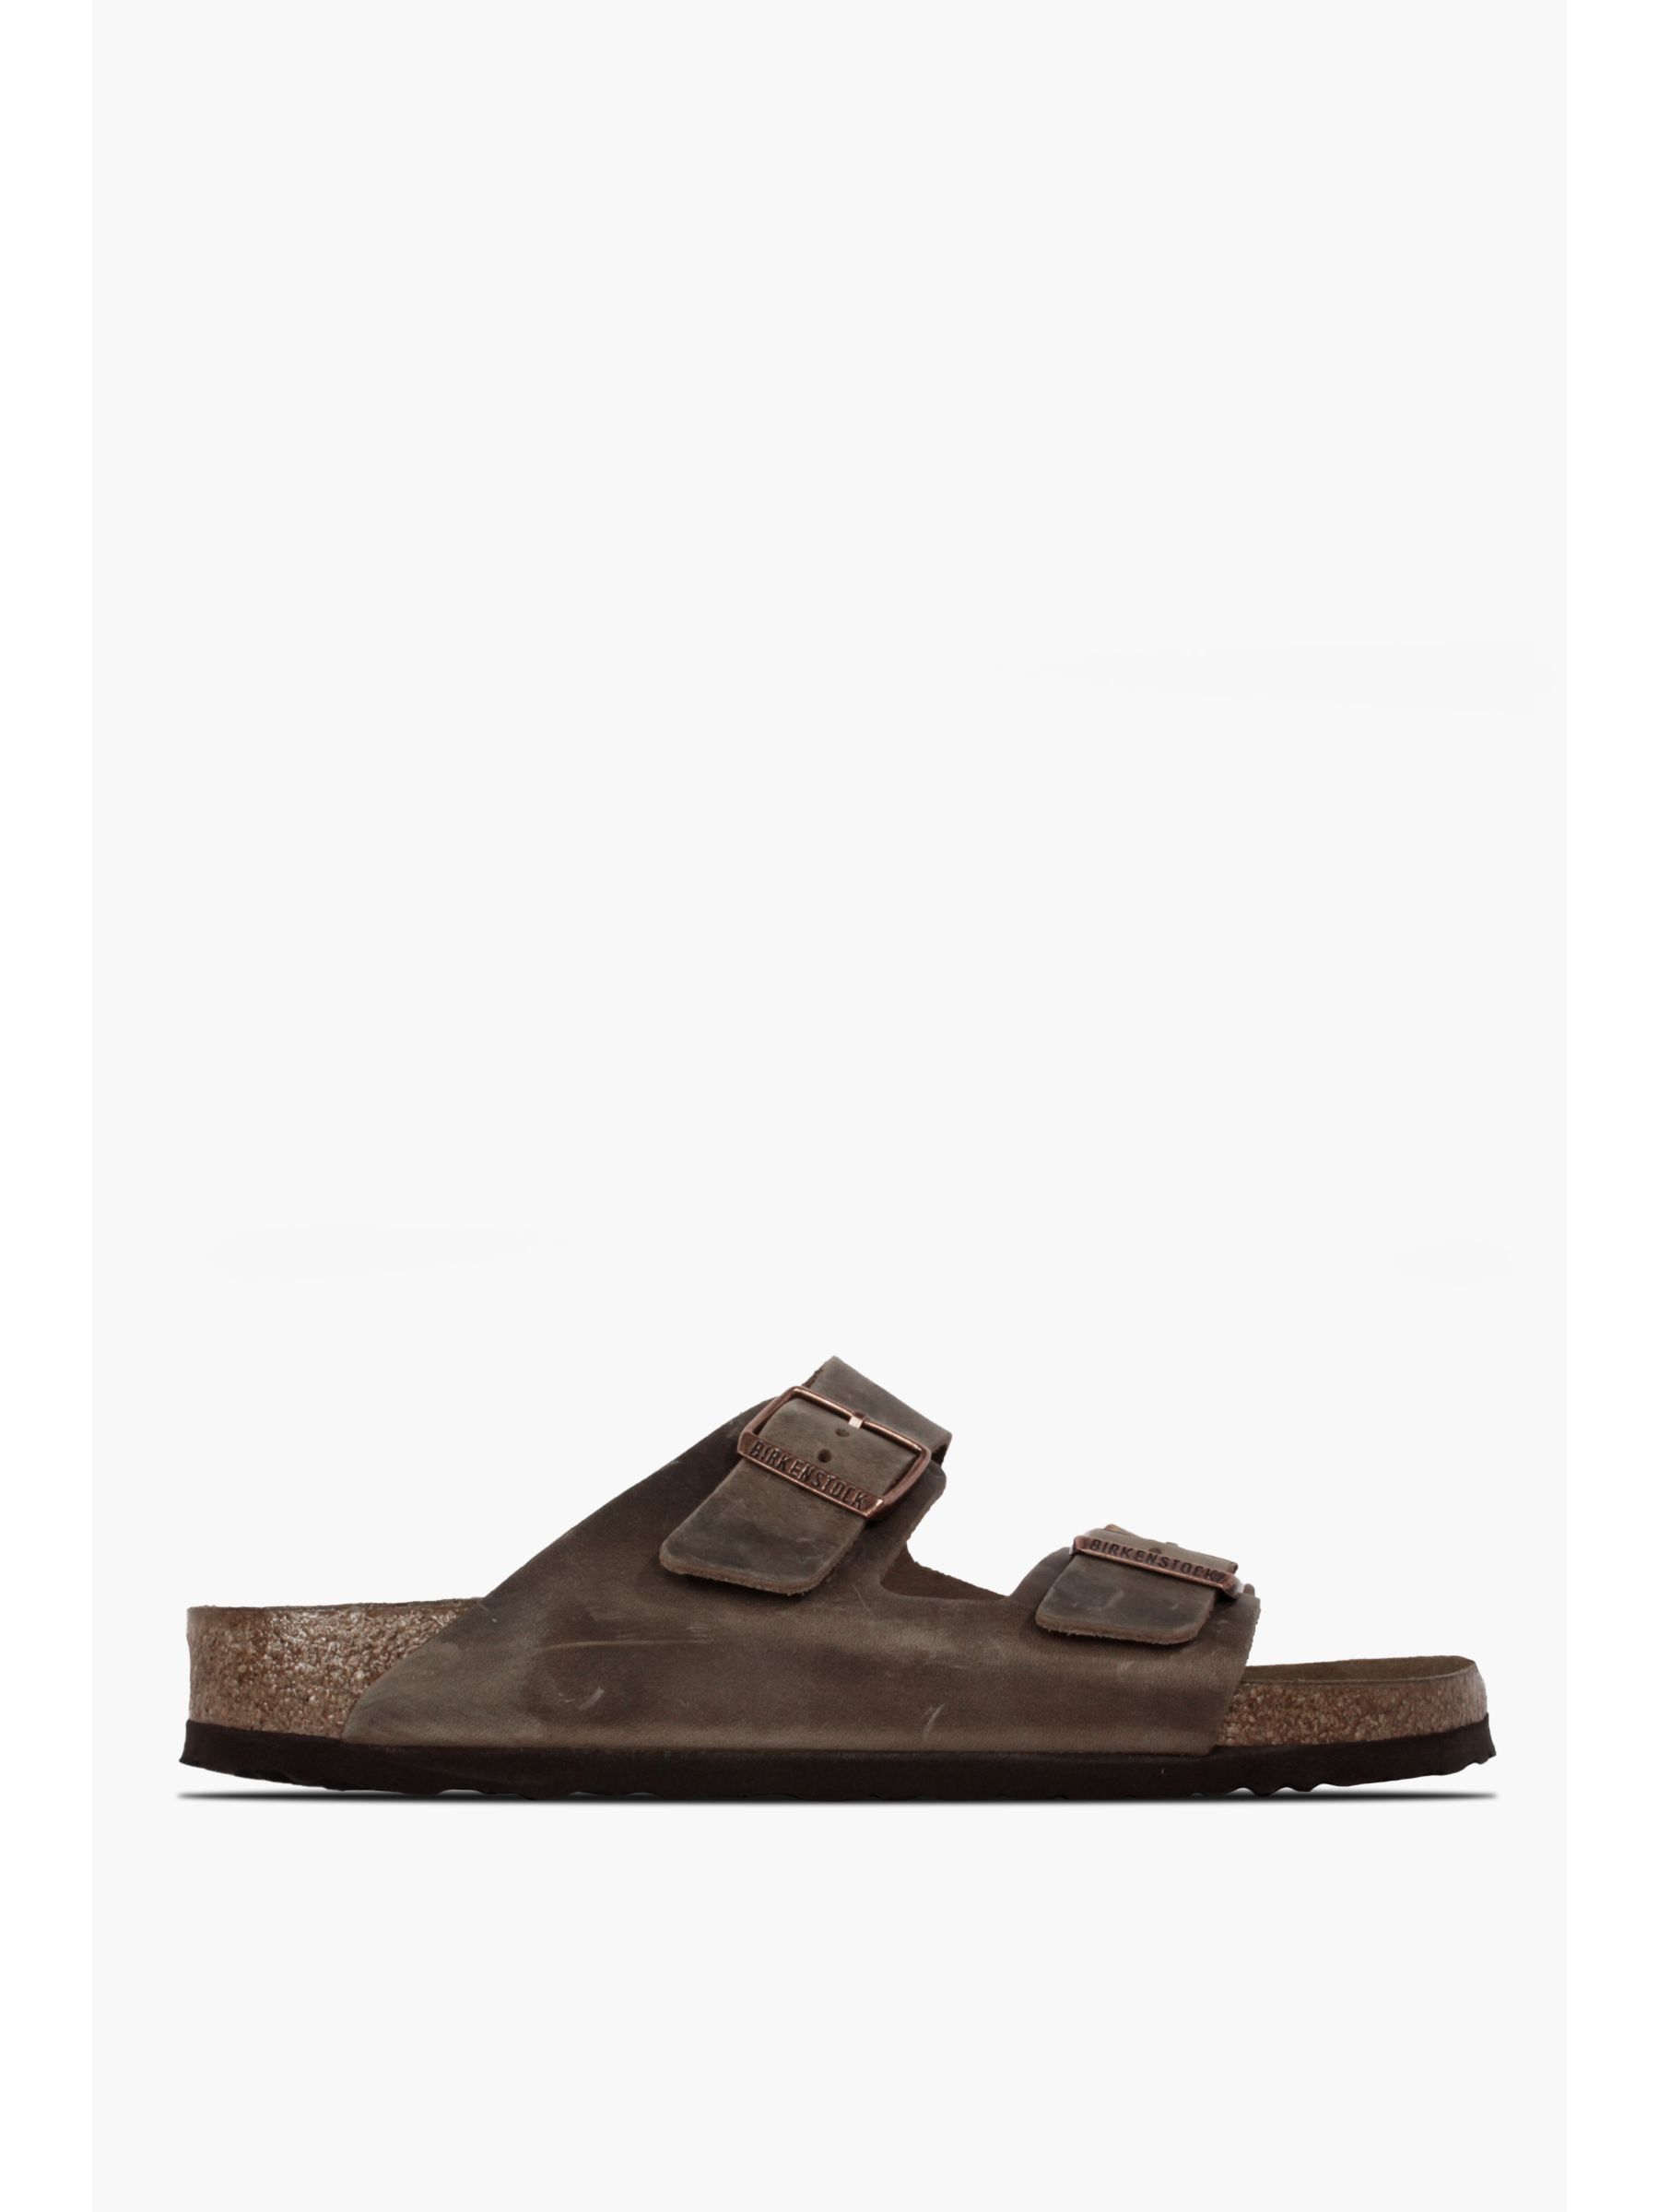 111022335_birkenstock_arizona_tabacco_brown_a.jpg